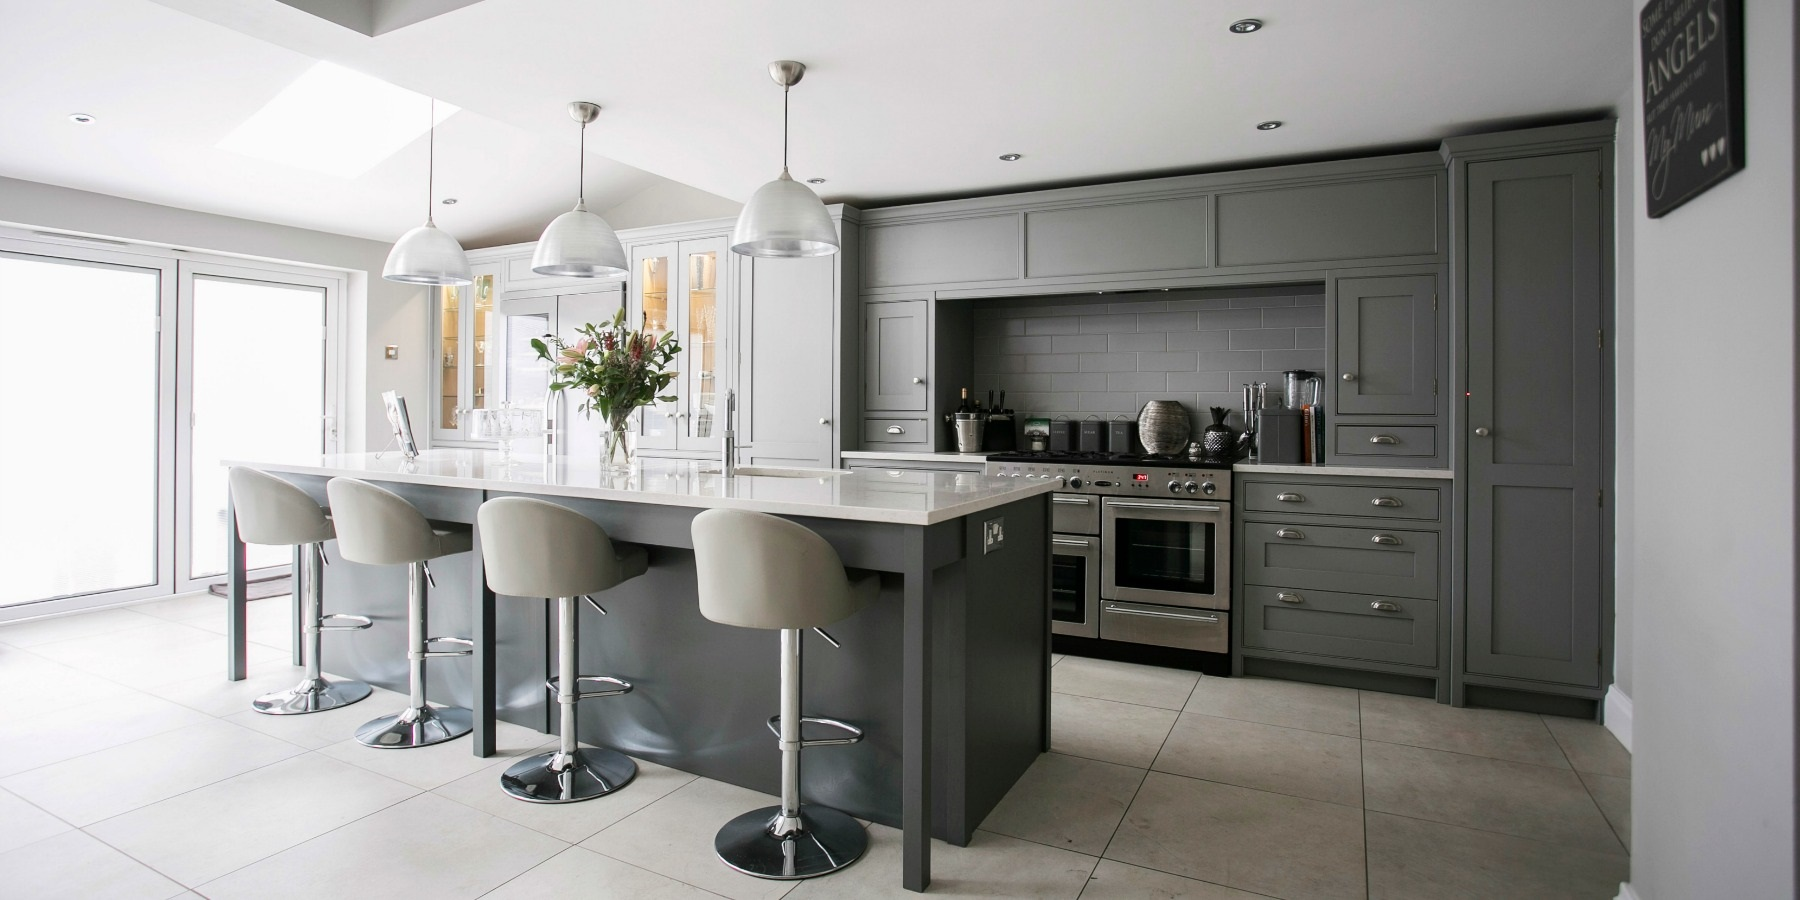 Contemporary Kitchens - Burlanes design kitchens inspired by you, to fit your lifestyle -